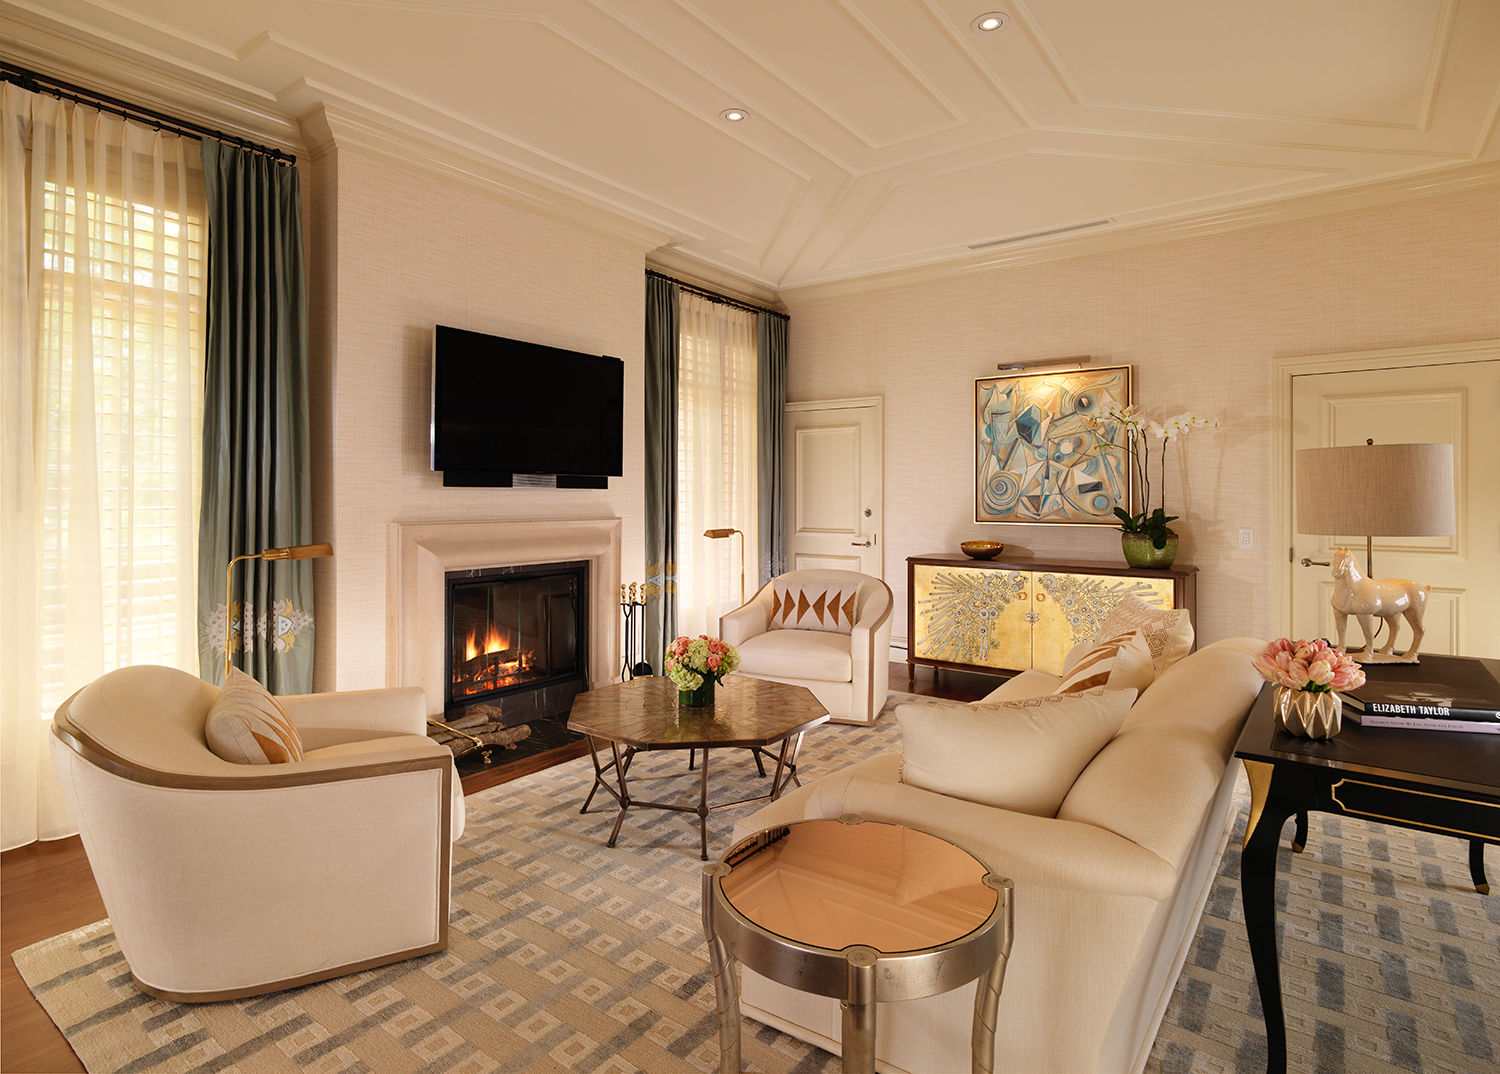 The chic living room with fireplace.